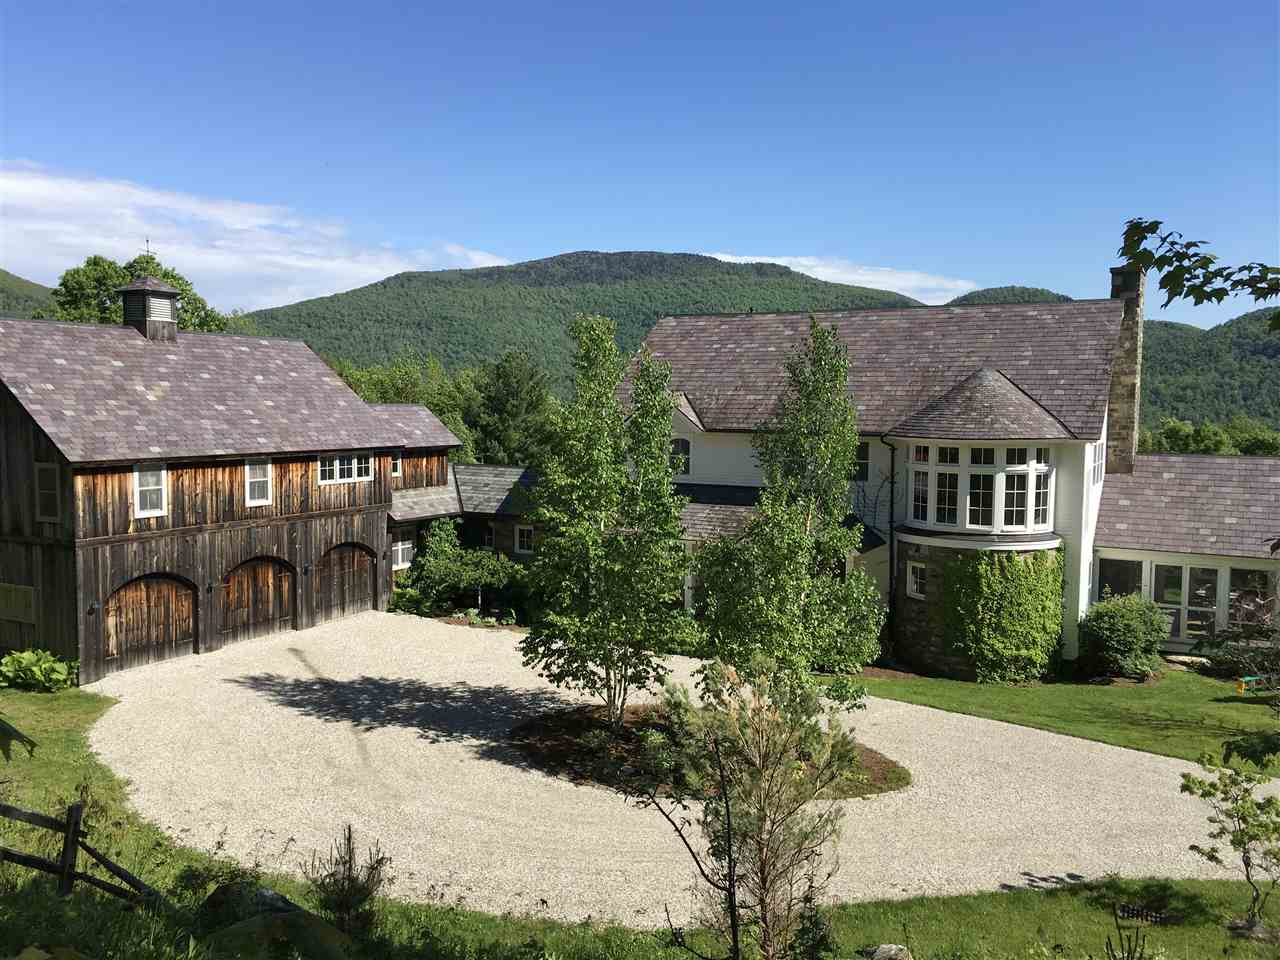 237 Lily Pond Lane, Dorset, VT 05251